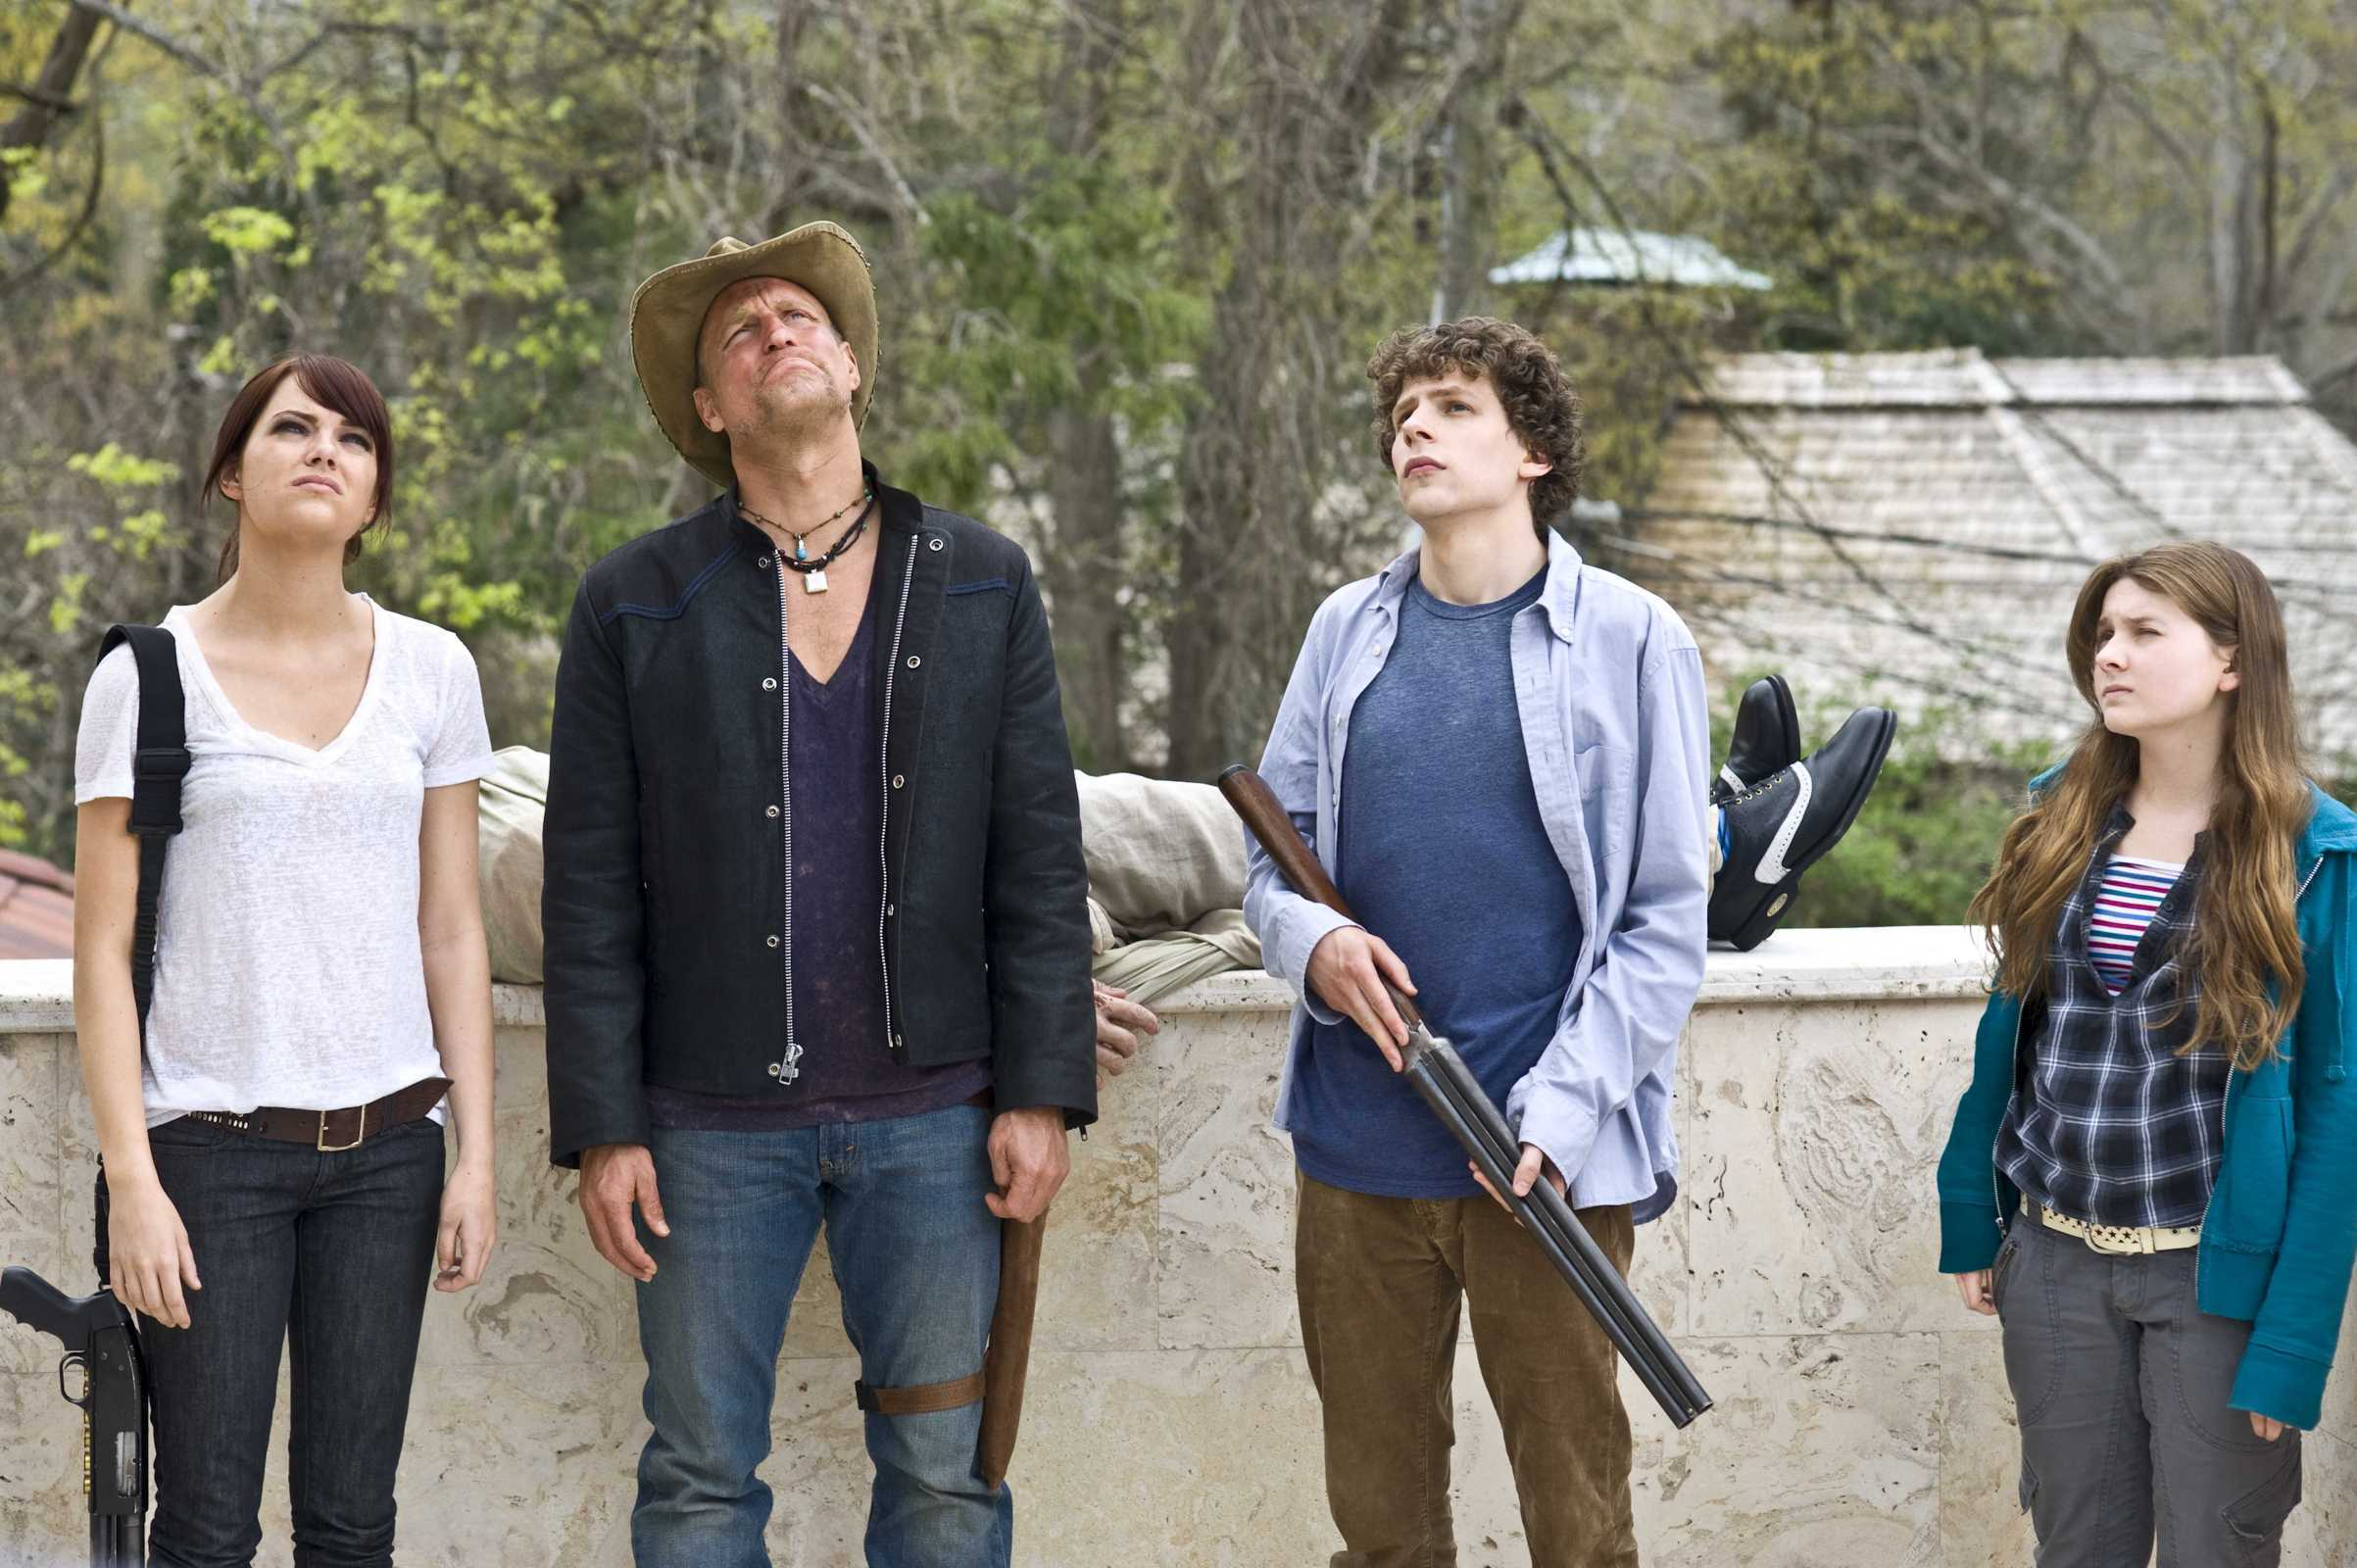 Zombieland: The Viewer's Commentary